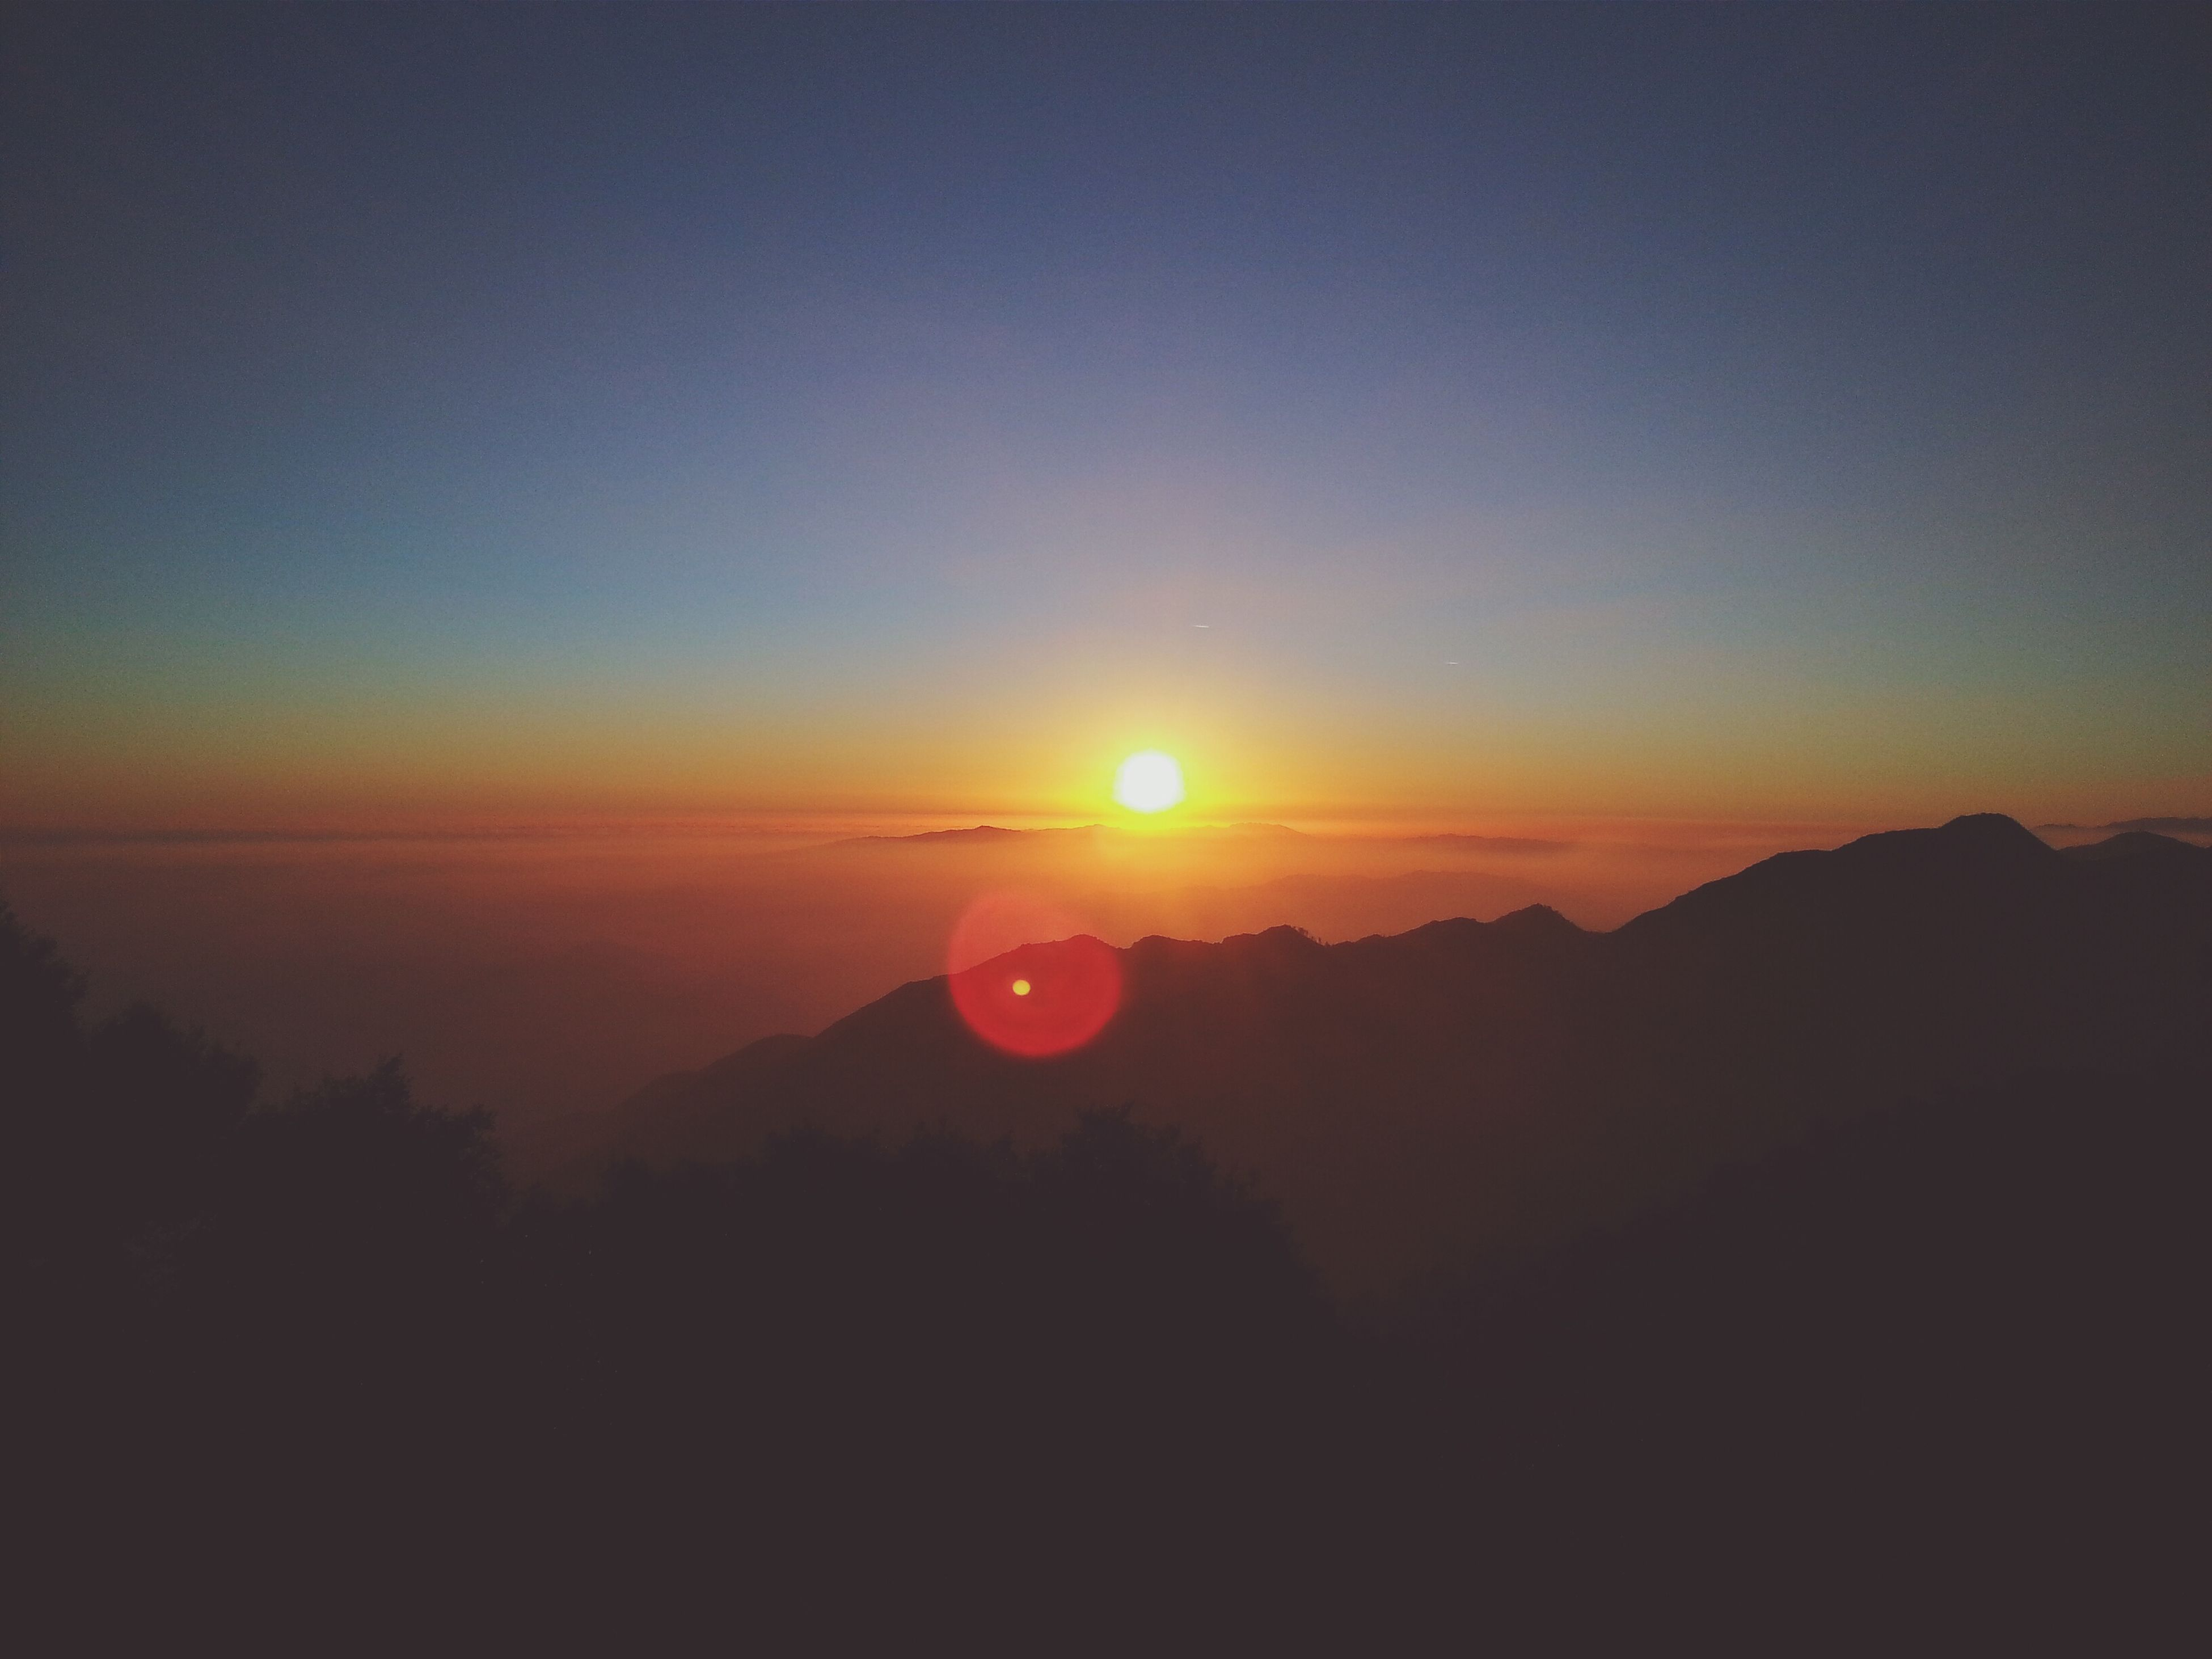 sunset, nature, silhouette, beauty in nature, sun, mountain, scenics, landscape, tranquility, tranquil scene, no people, sky, outdoors, clear sky